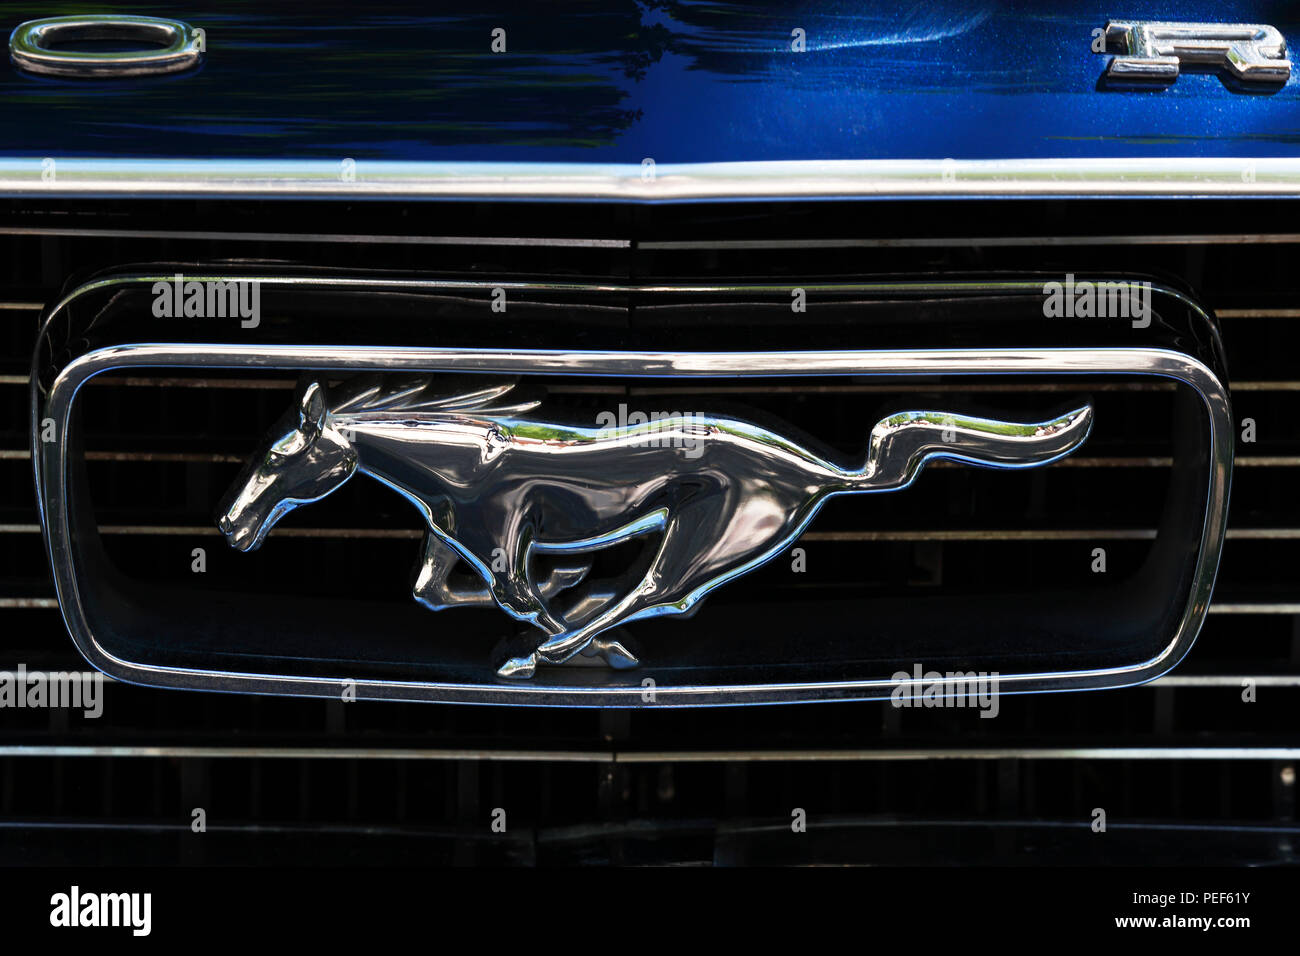 mustang emblem stock photos mustang emblem stock images. Black Bedroom Furniture Sets. Home Design Ideas